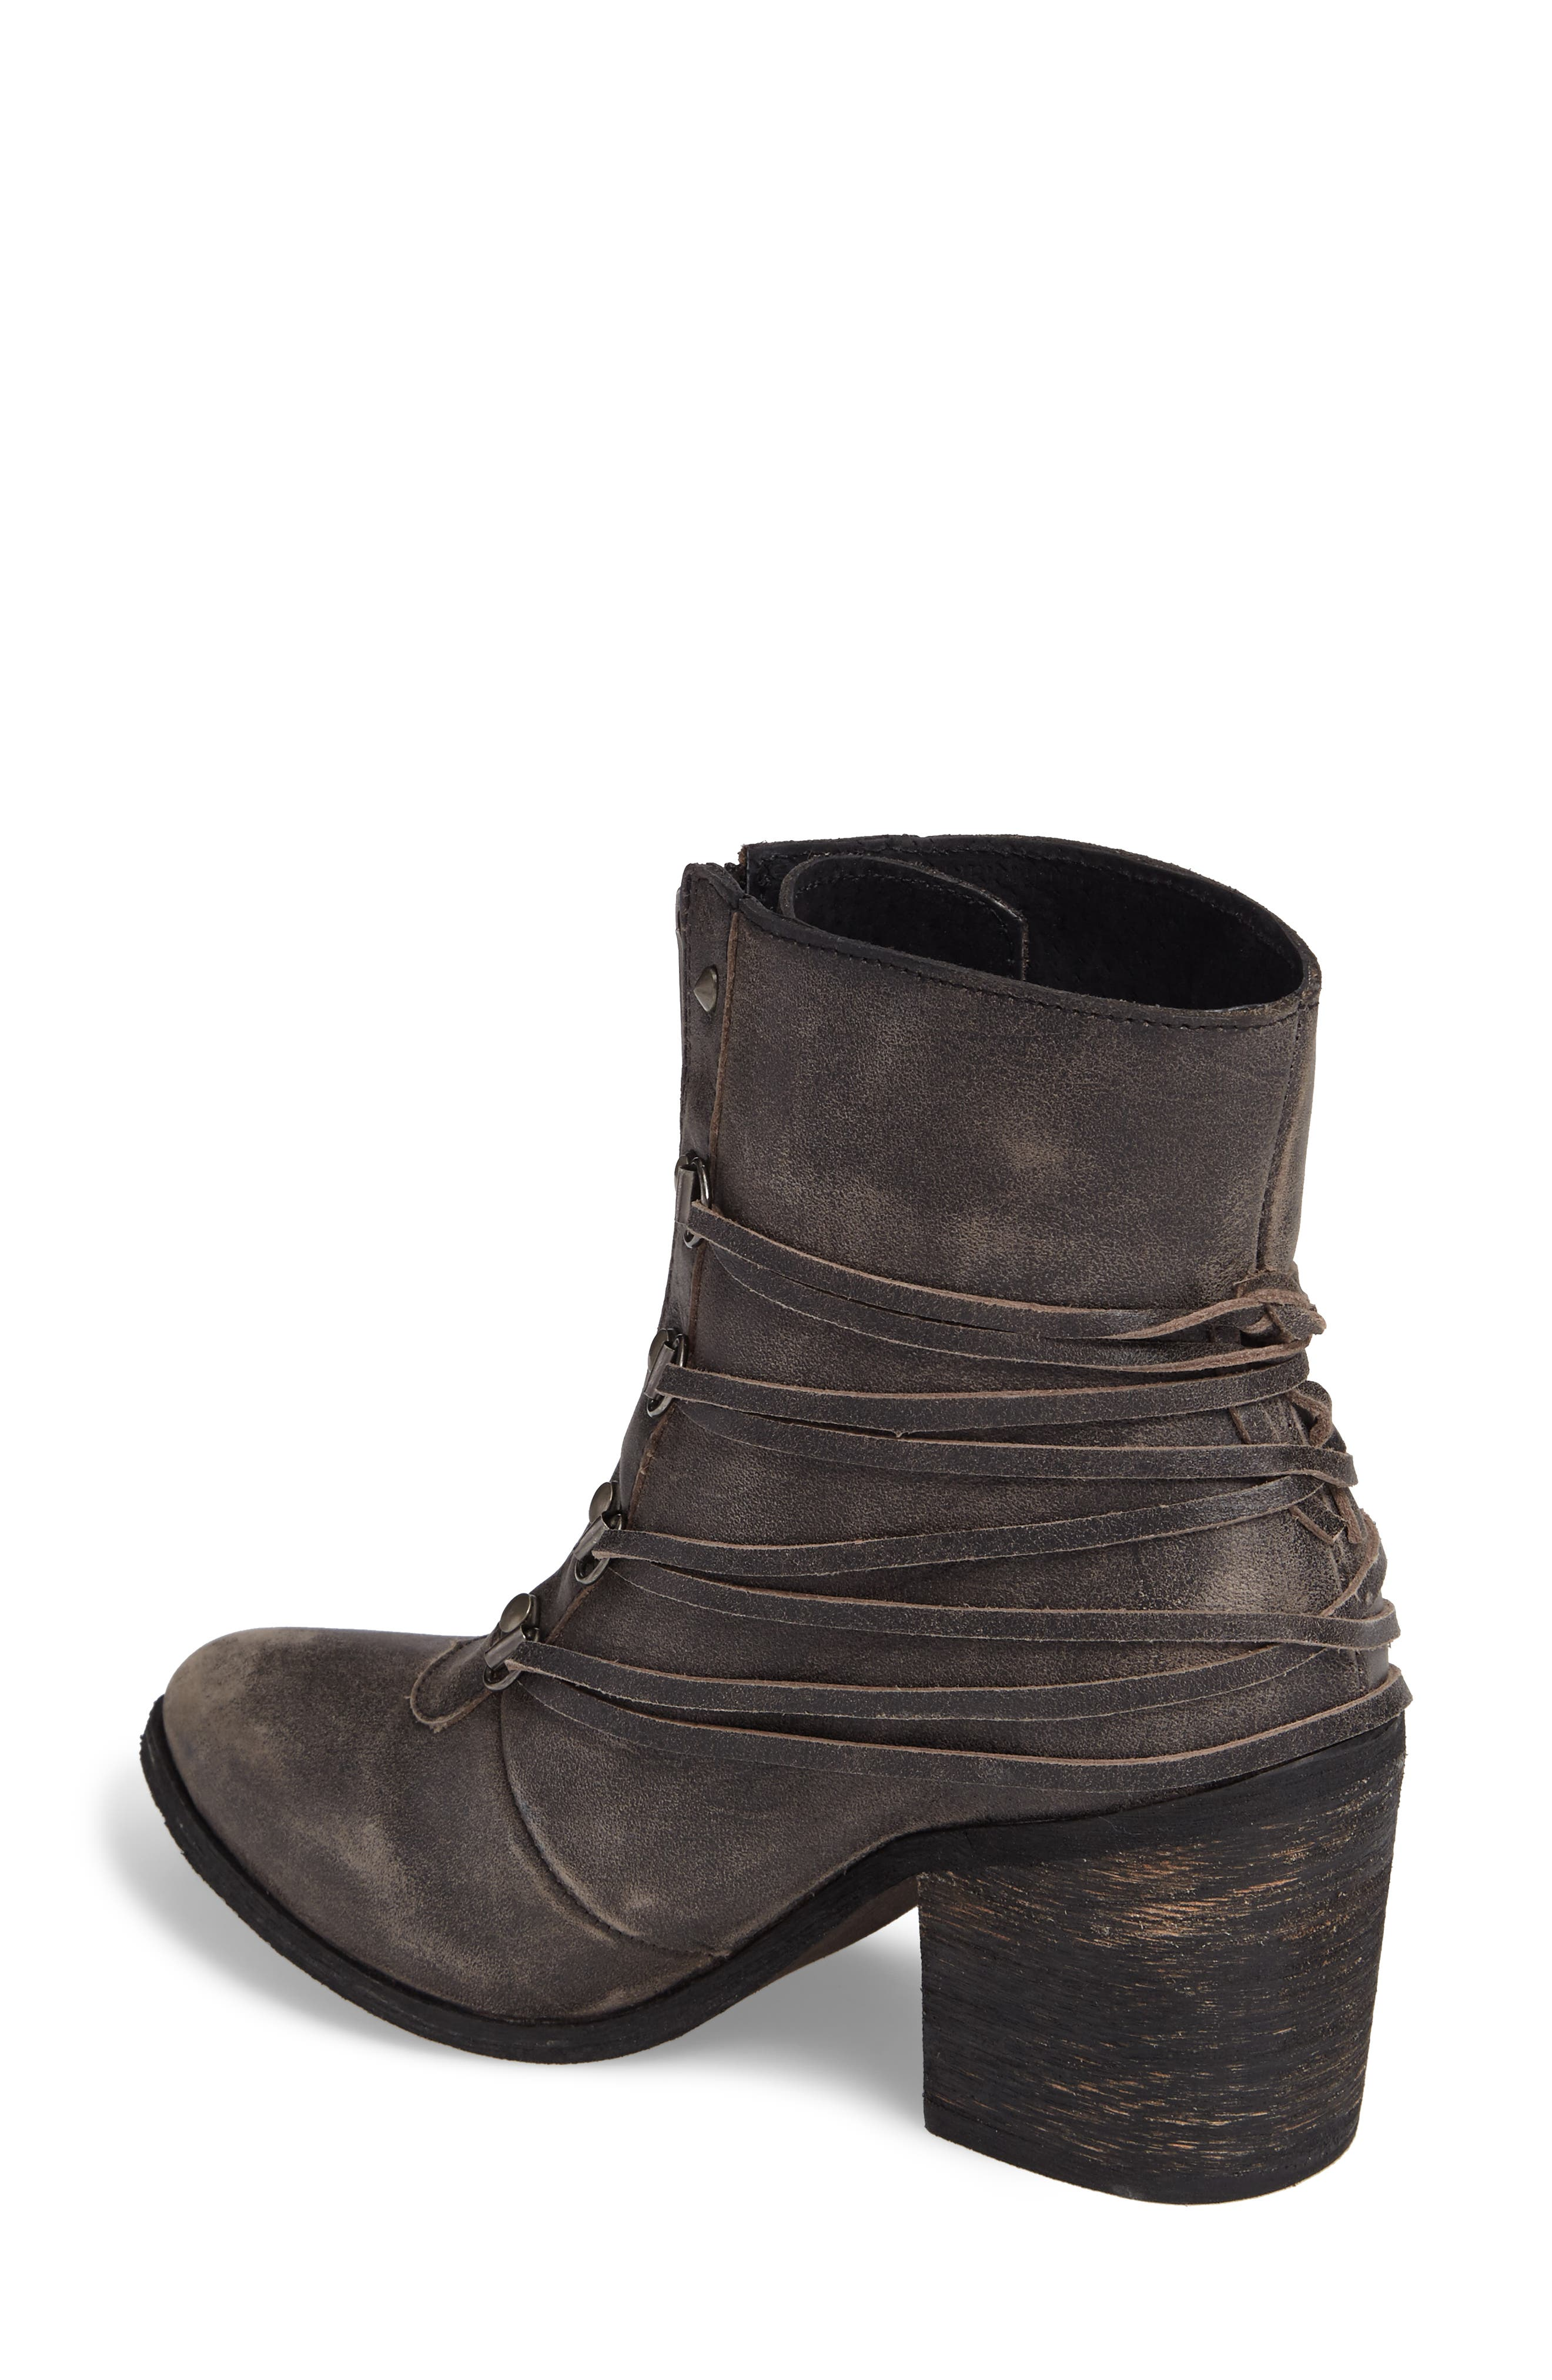 Peacekeeper Lace-Up Bootie,                             Alternate thumbnail 2, color,                             001